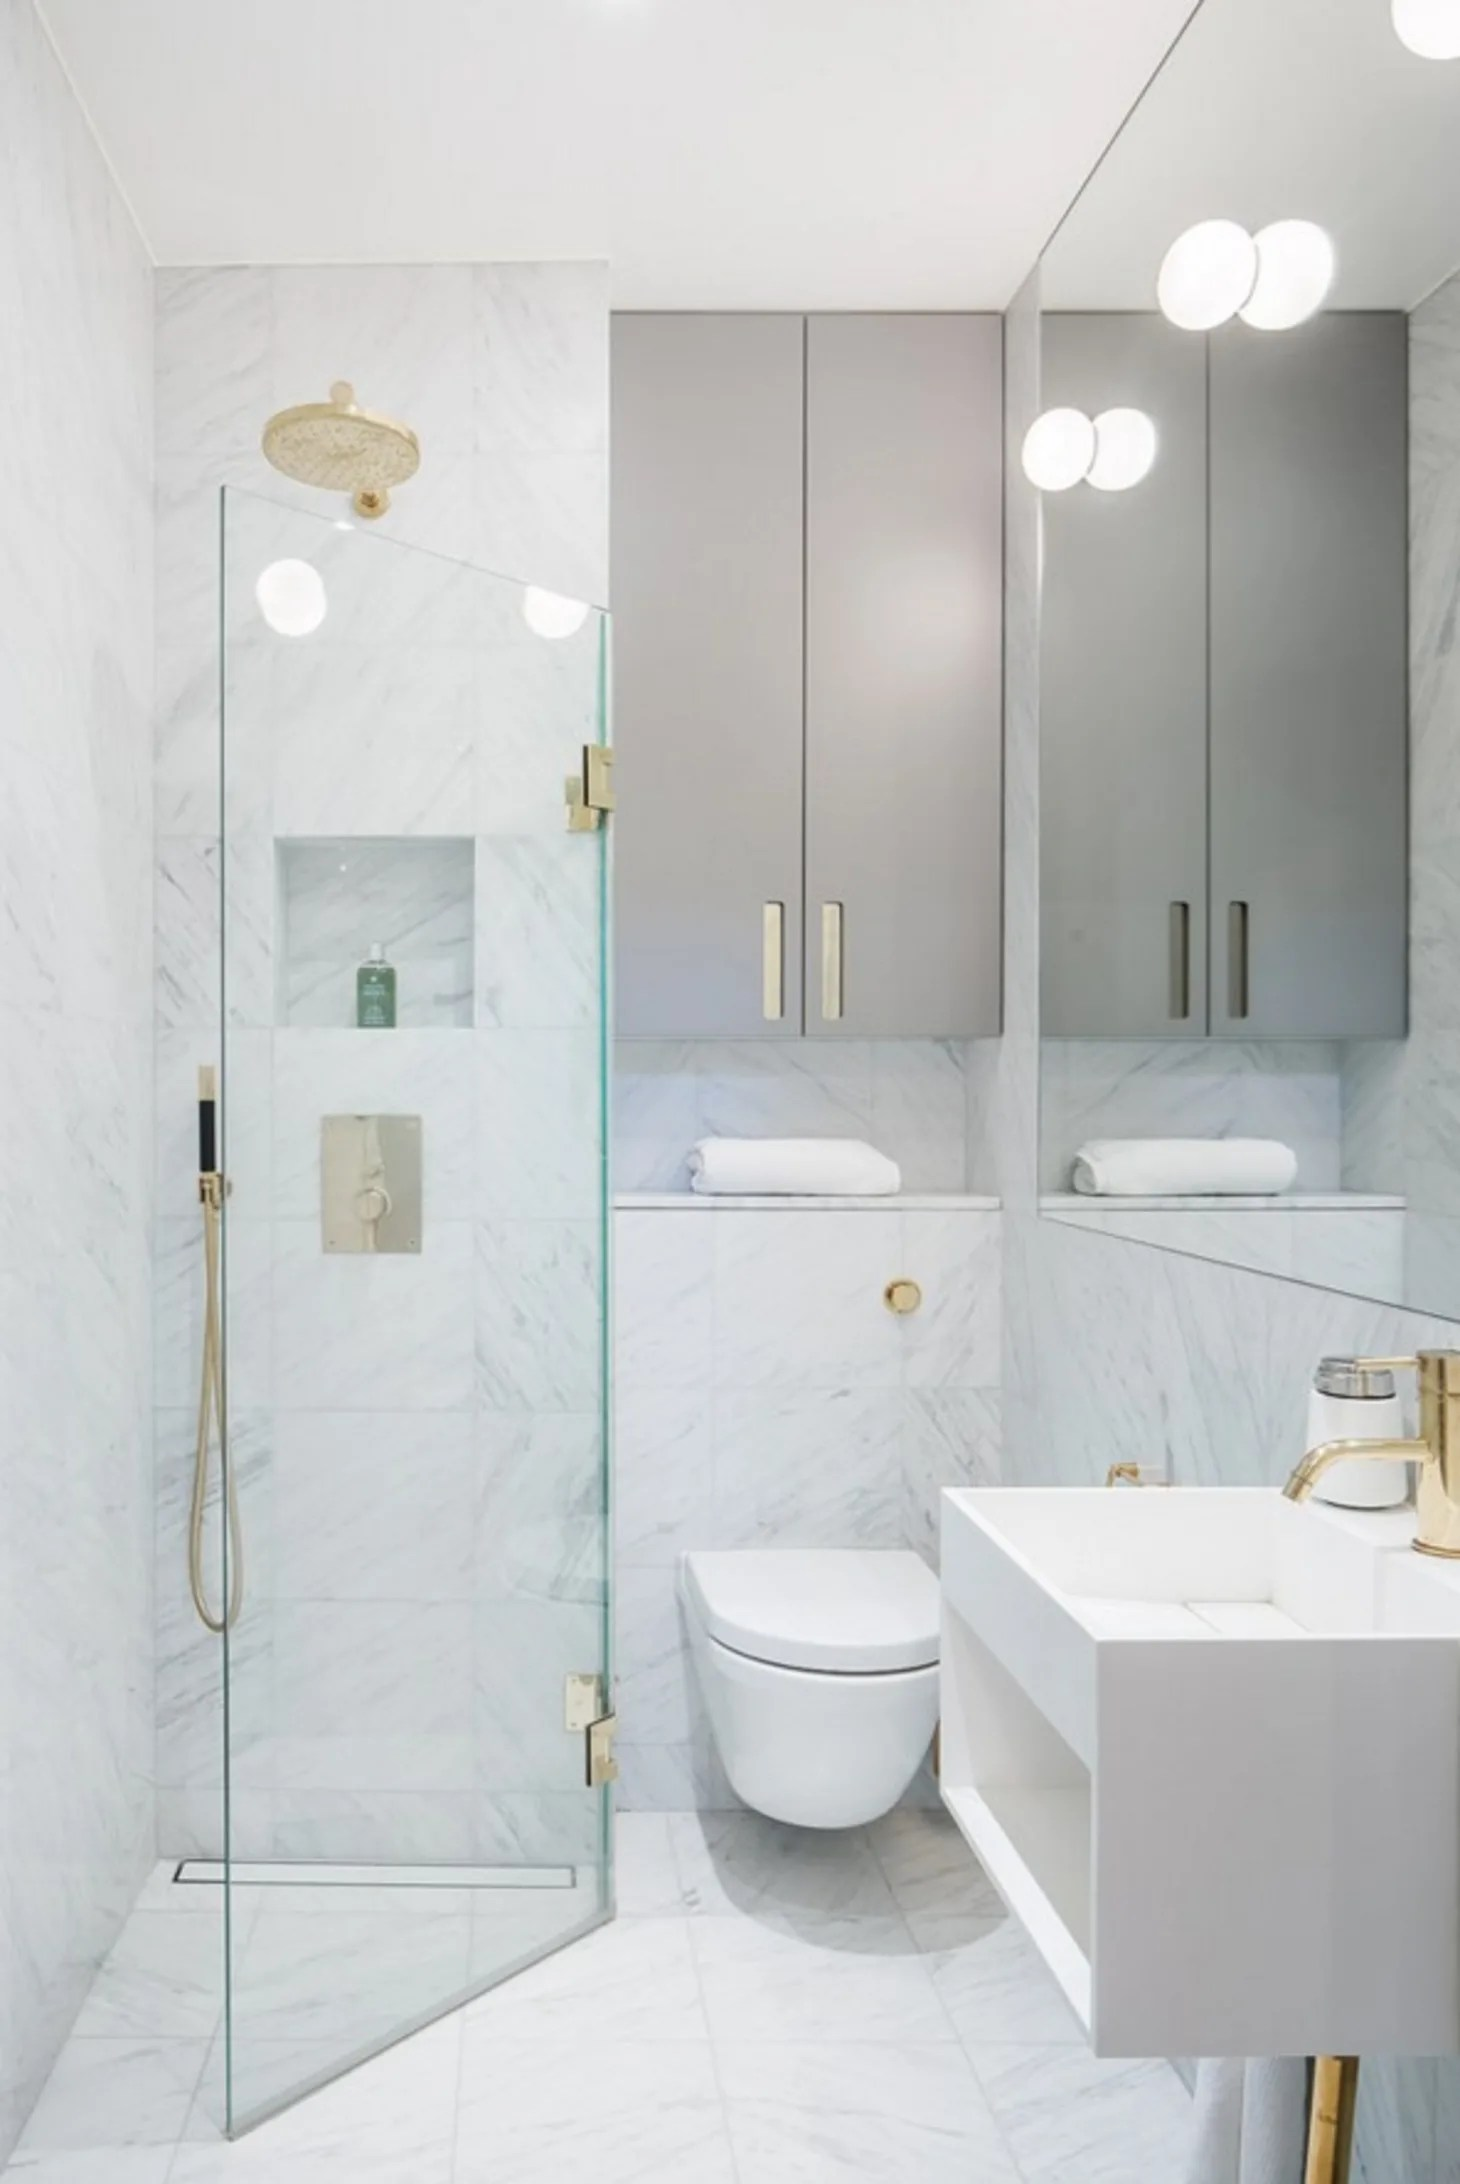 Stylish Remodeling Ideas for Small Bathrooms   Apartment ... on Small Apartment Bathroom  id=12099